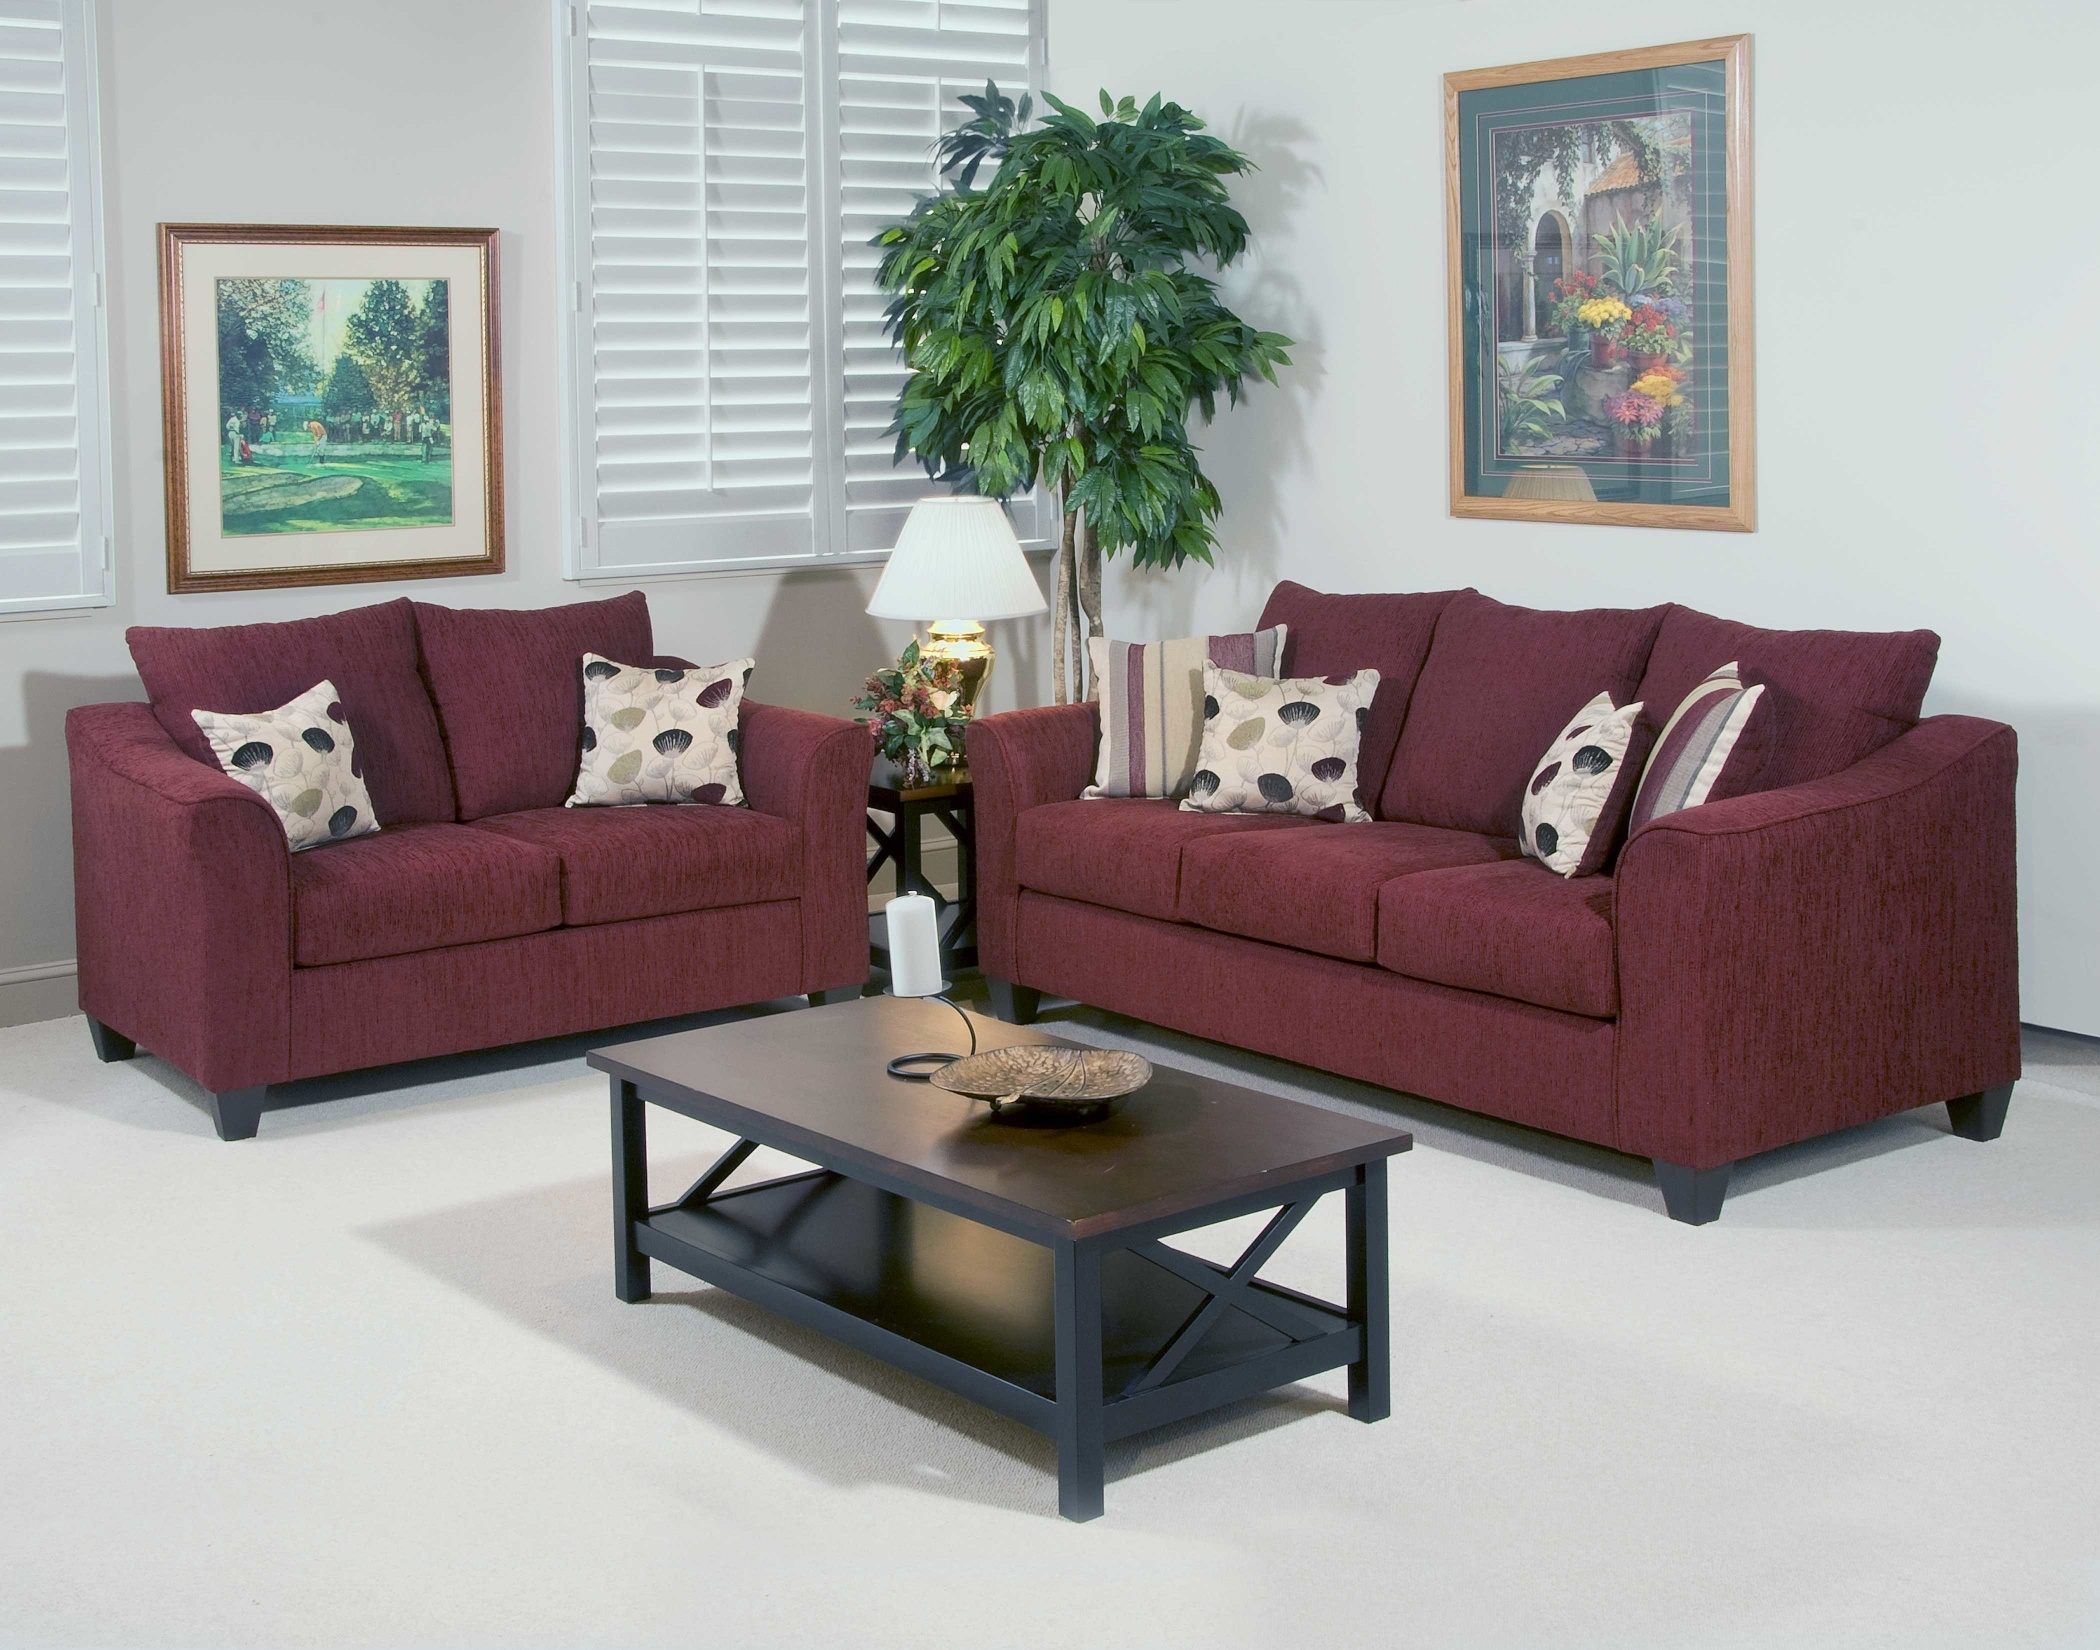 Doc 39 s furniture coupons near me in west columbia 8coupons for K furniture near me